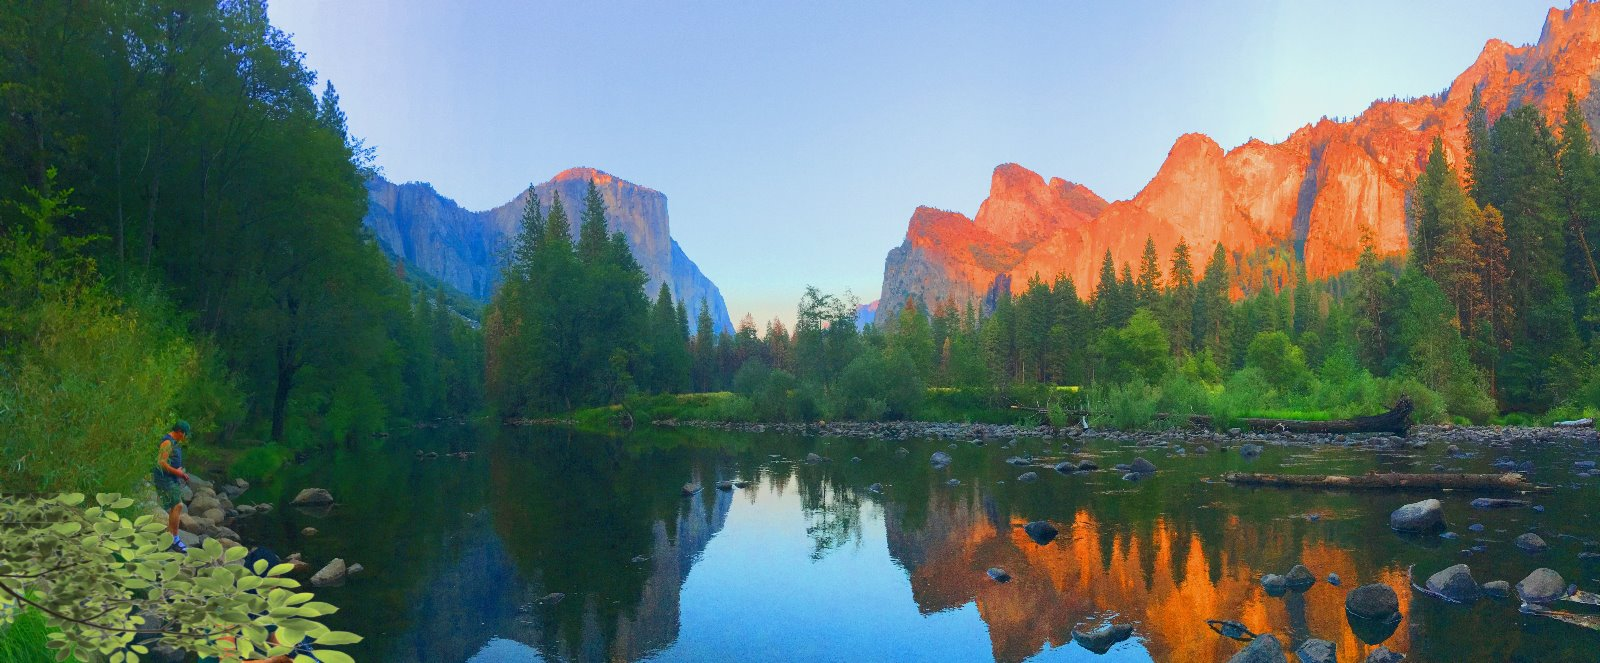 things_to_see_in_yosemite_national_park_attractions